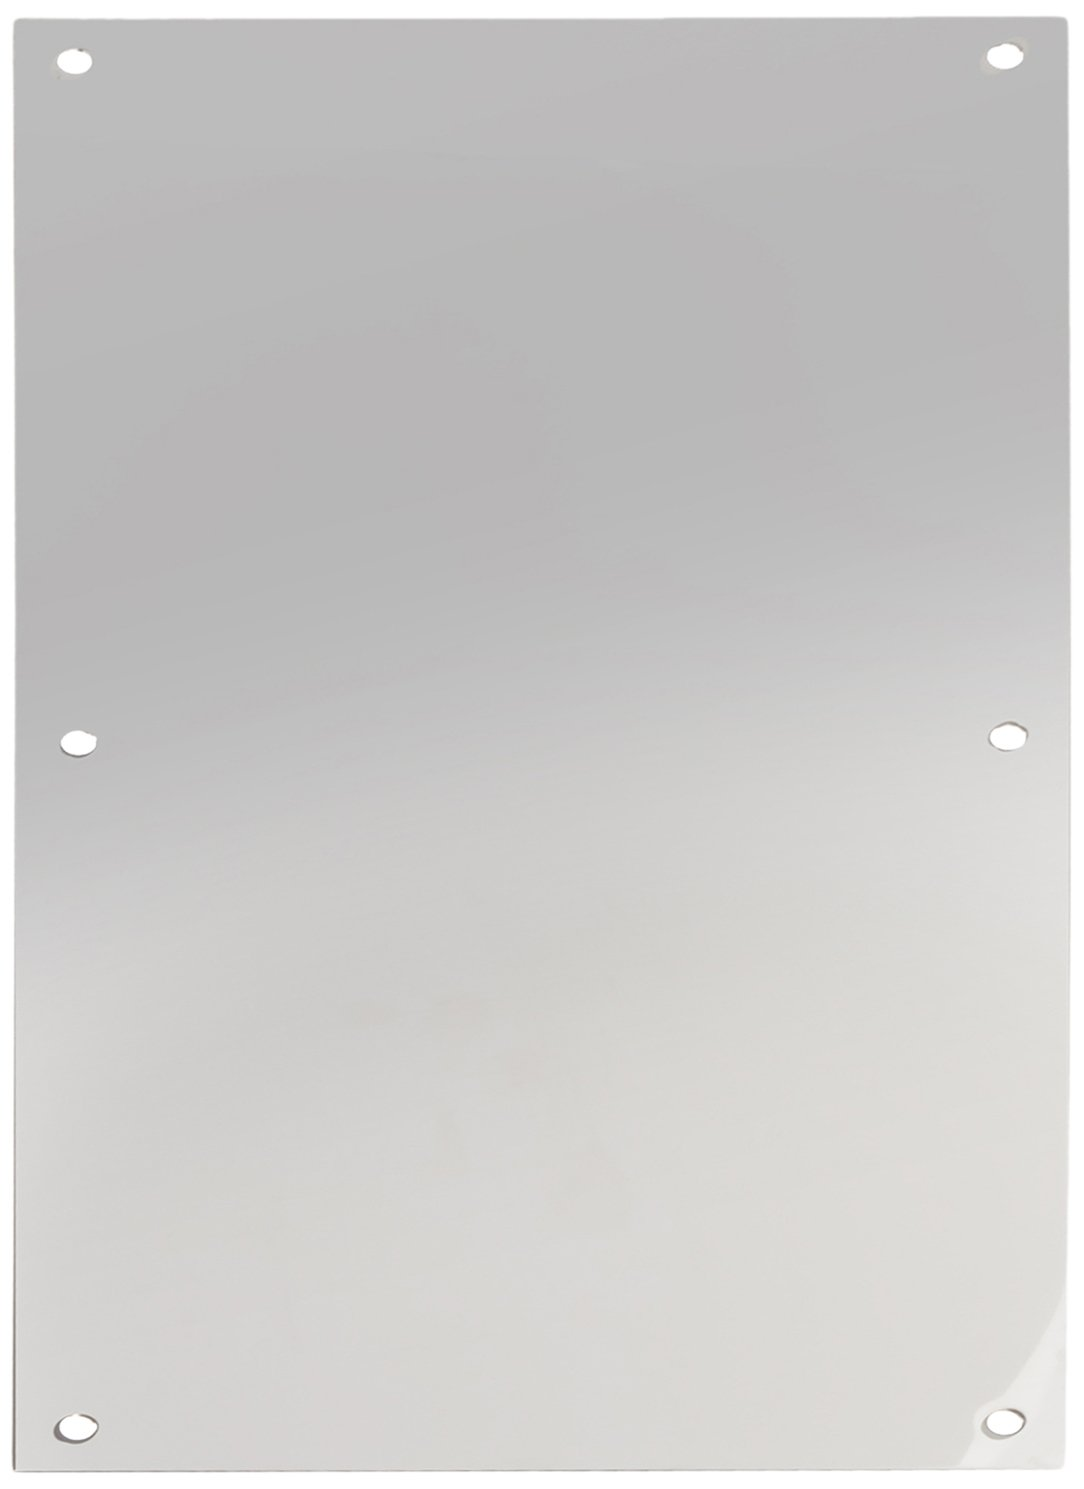 Rockwood 70F.32 Stainless Steel Standard Push Plate, Four Beveled Edges, 16' Height x 8' Width x 0.050' Thick, Polished Finish 16 Height x 8 Width x 0.050 Thick Rockwood Manufacturing Company